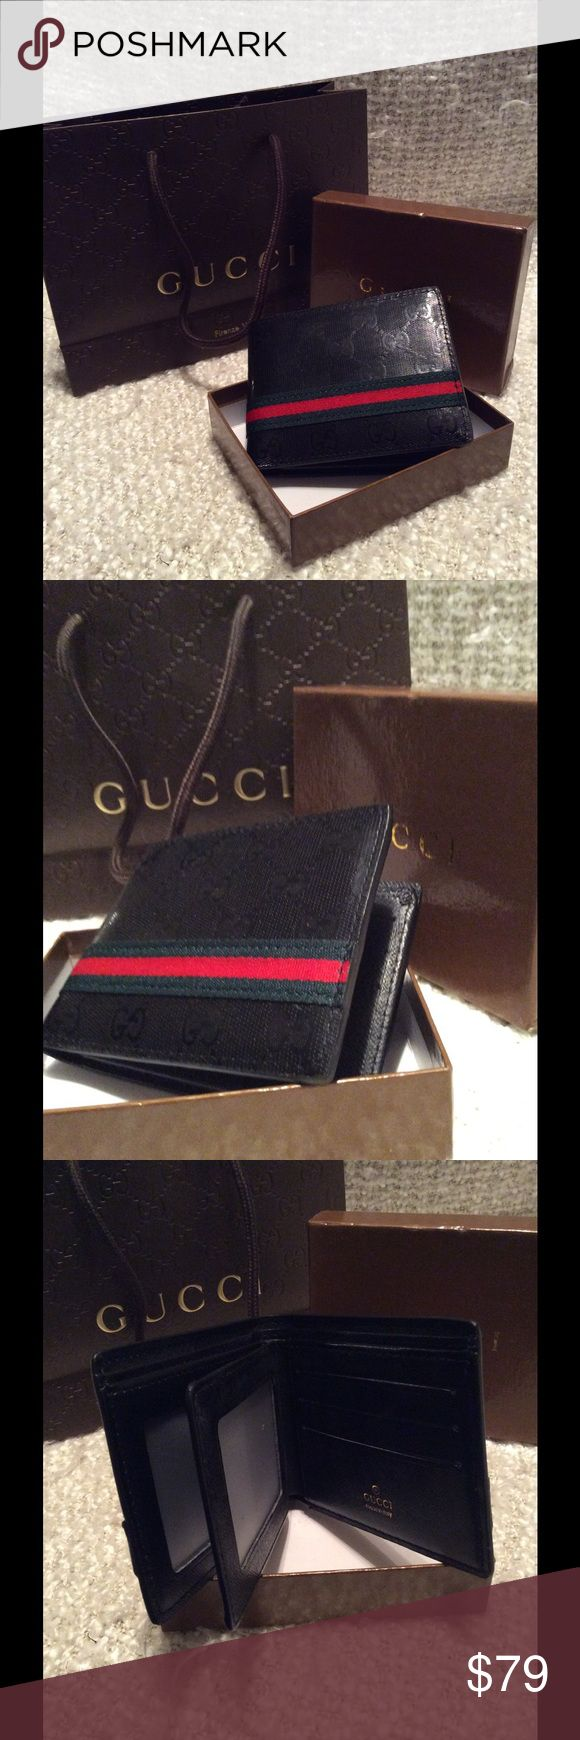 GG mens wallet new with shopping bags GG mens wallet new with shipping bags Gucci Bags Wallets